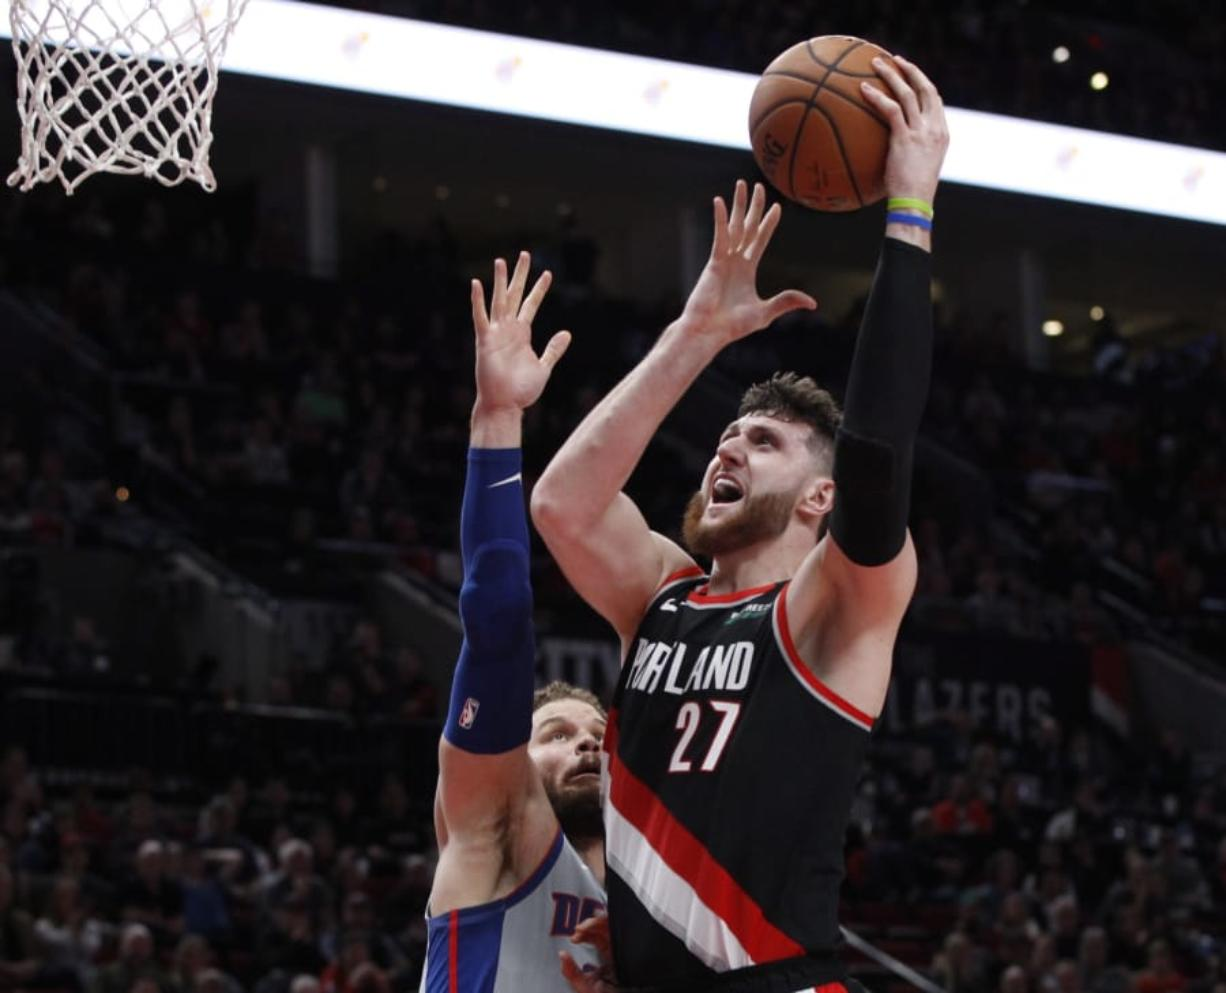 Portland Trail Blazers center Jusuf Nurkic was averaging 15.6 points and 10.4 rebounds per game before suffering a broken leg last season.